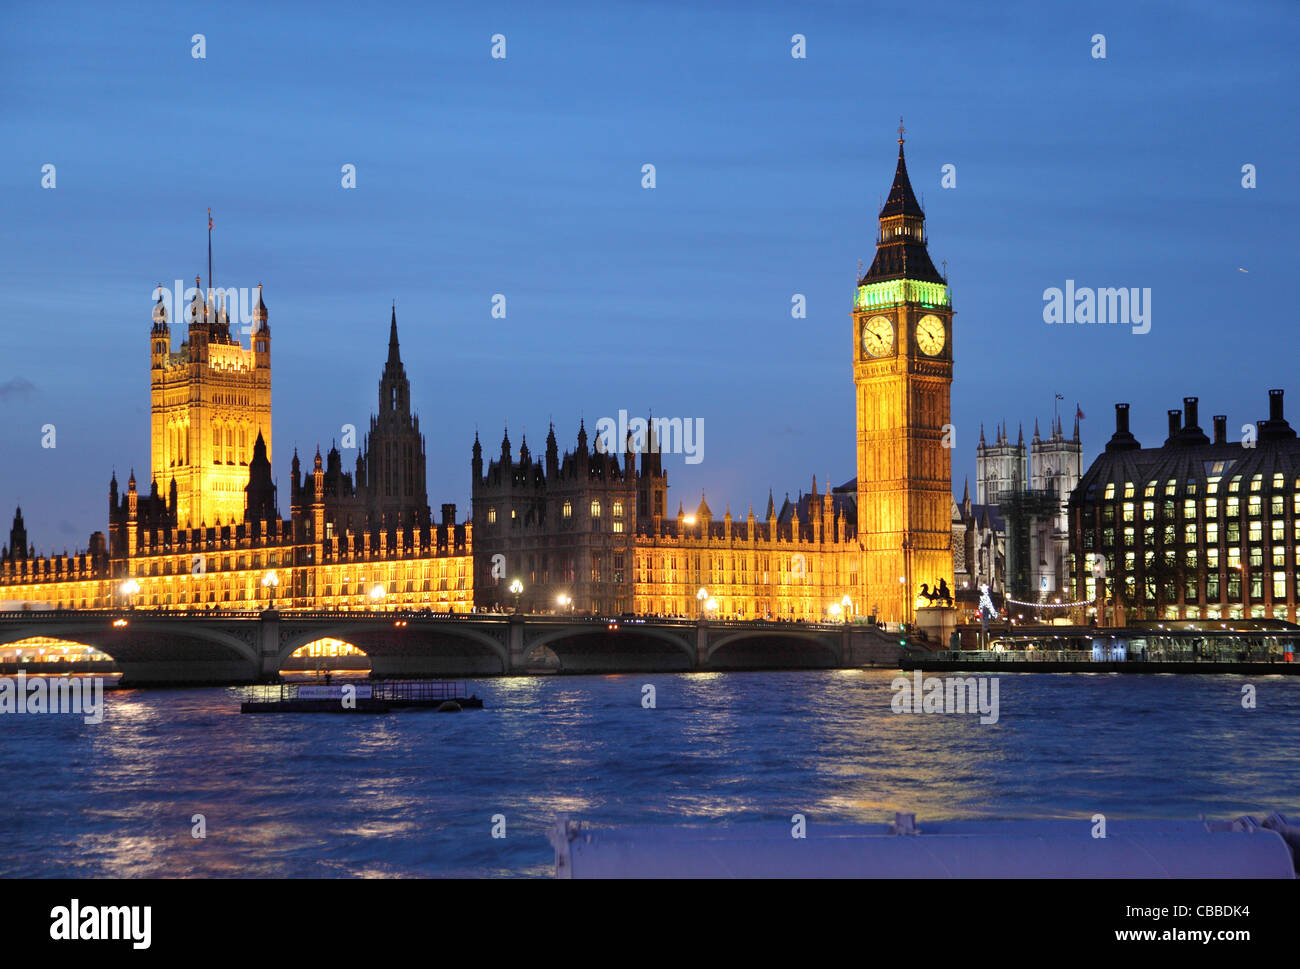 Houses of Parliament, Big Ben, River Thames and Westminster Abbey at night Stock Photo